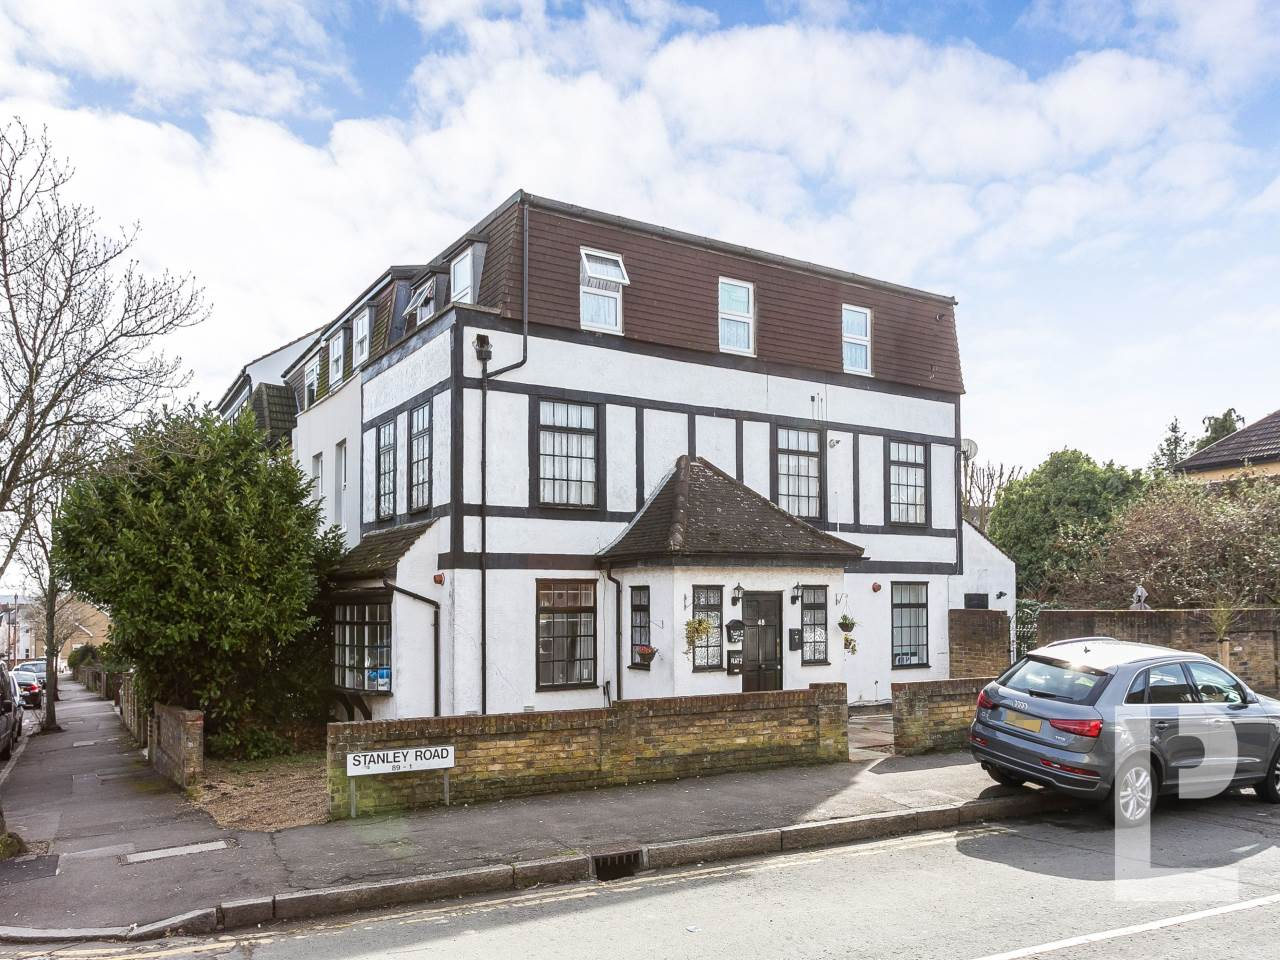 2 bed flat for sale in South Woodford , E18